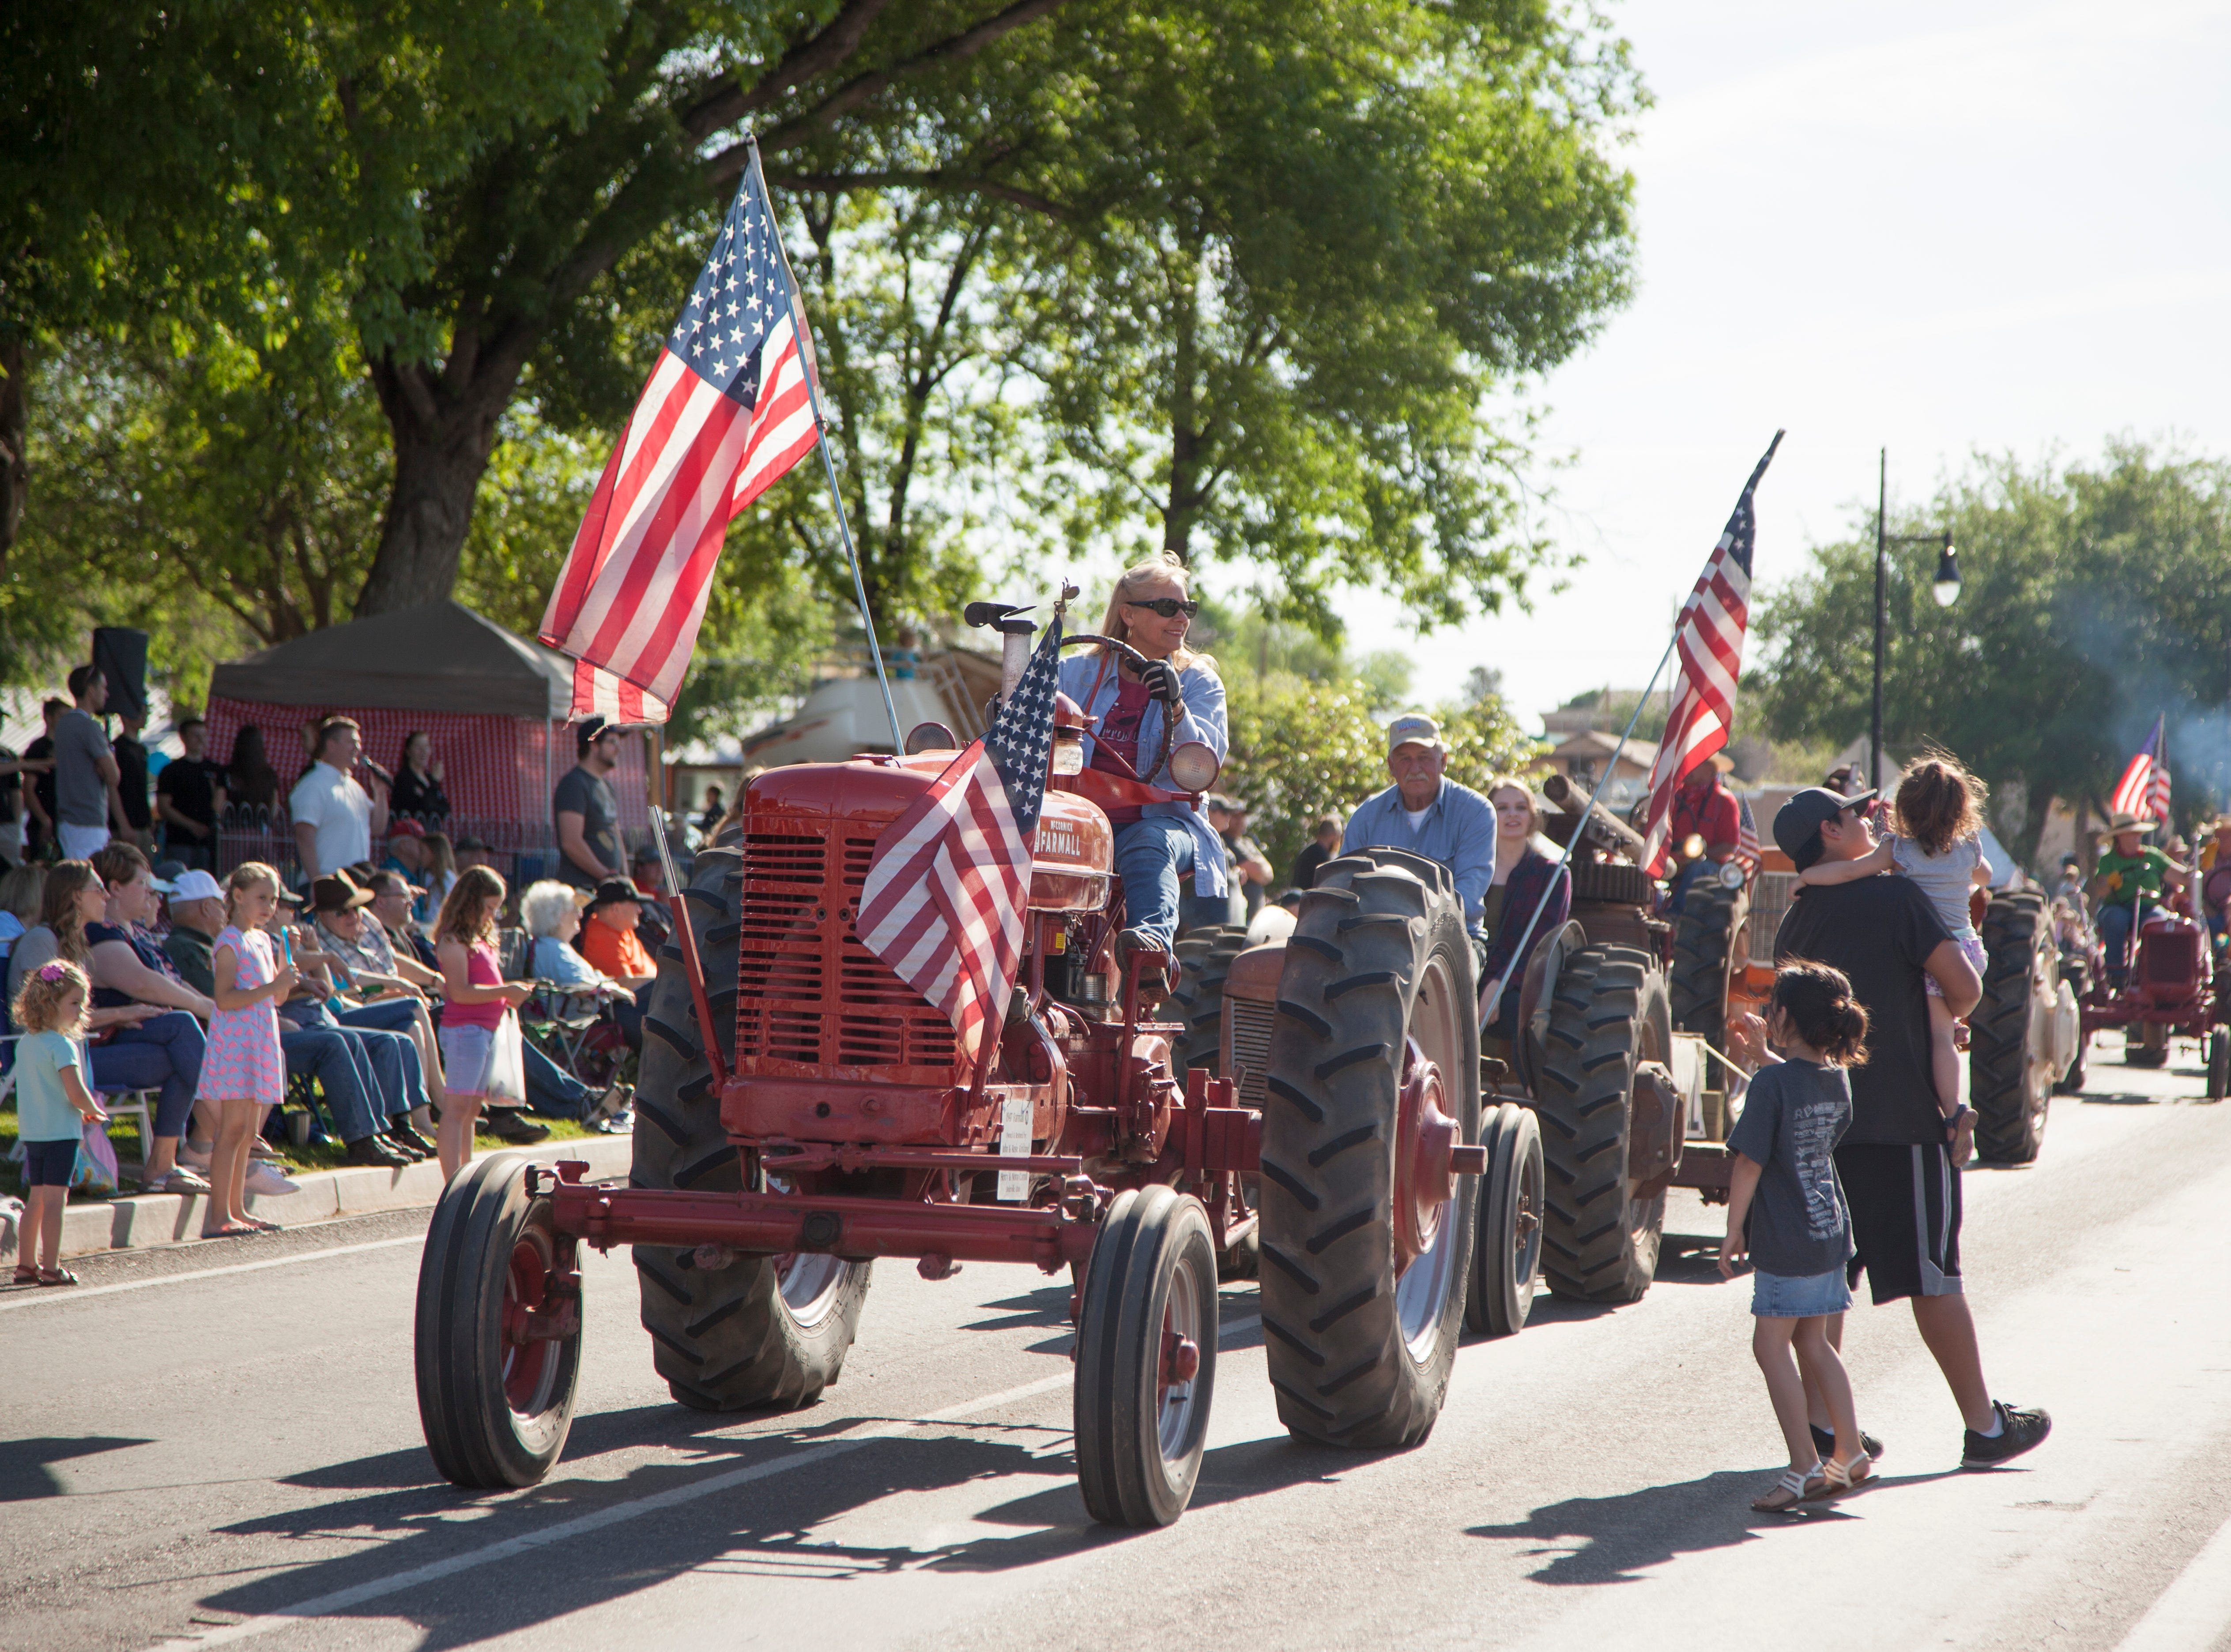 Residents gather on Telegraph Street for the annual Cotton Days parade and activities Saturday, April 27, 2019.